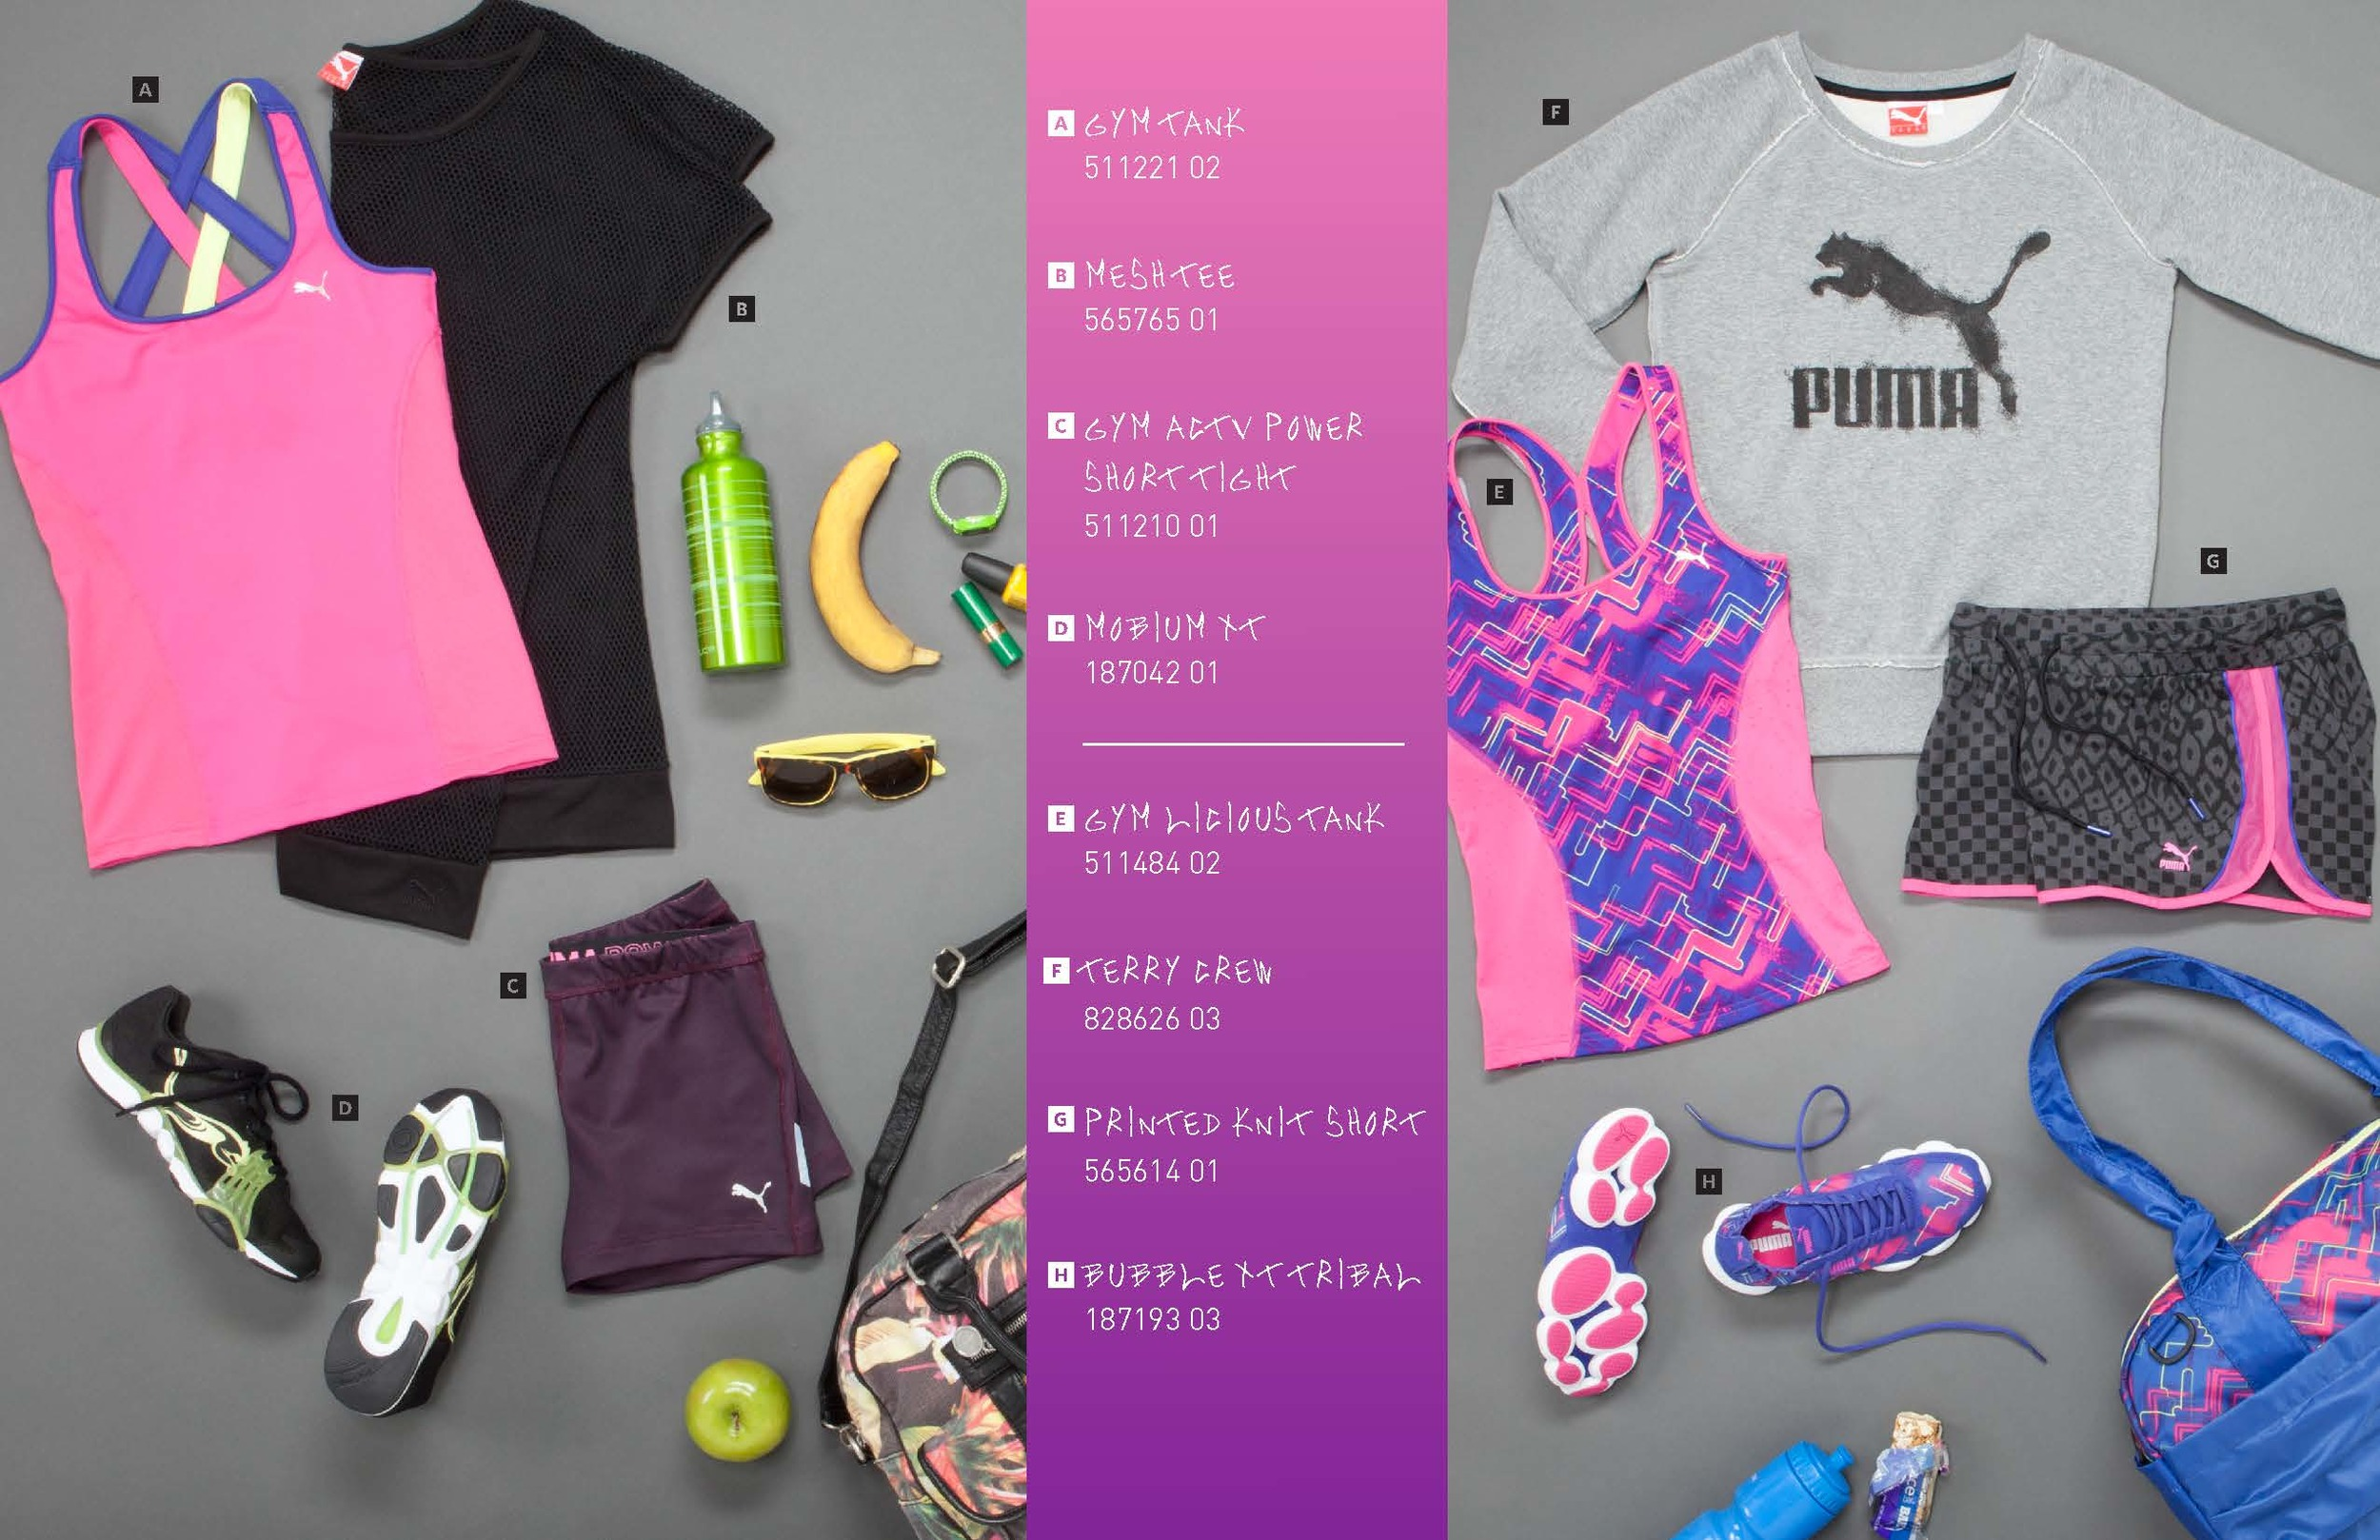 PUMA_booklet_7-30-13_HIRES_view_Page_05.jpg